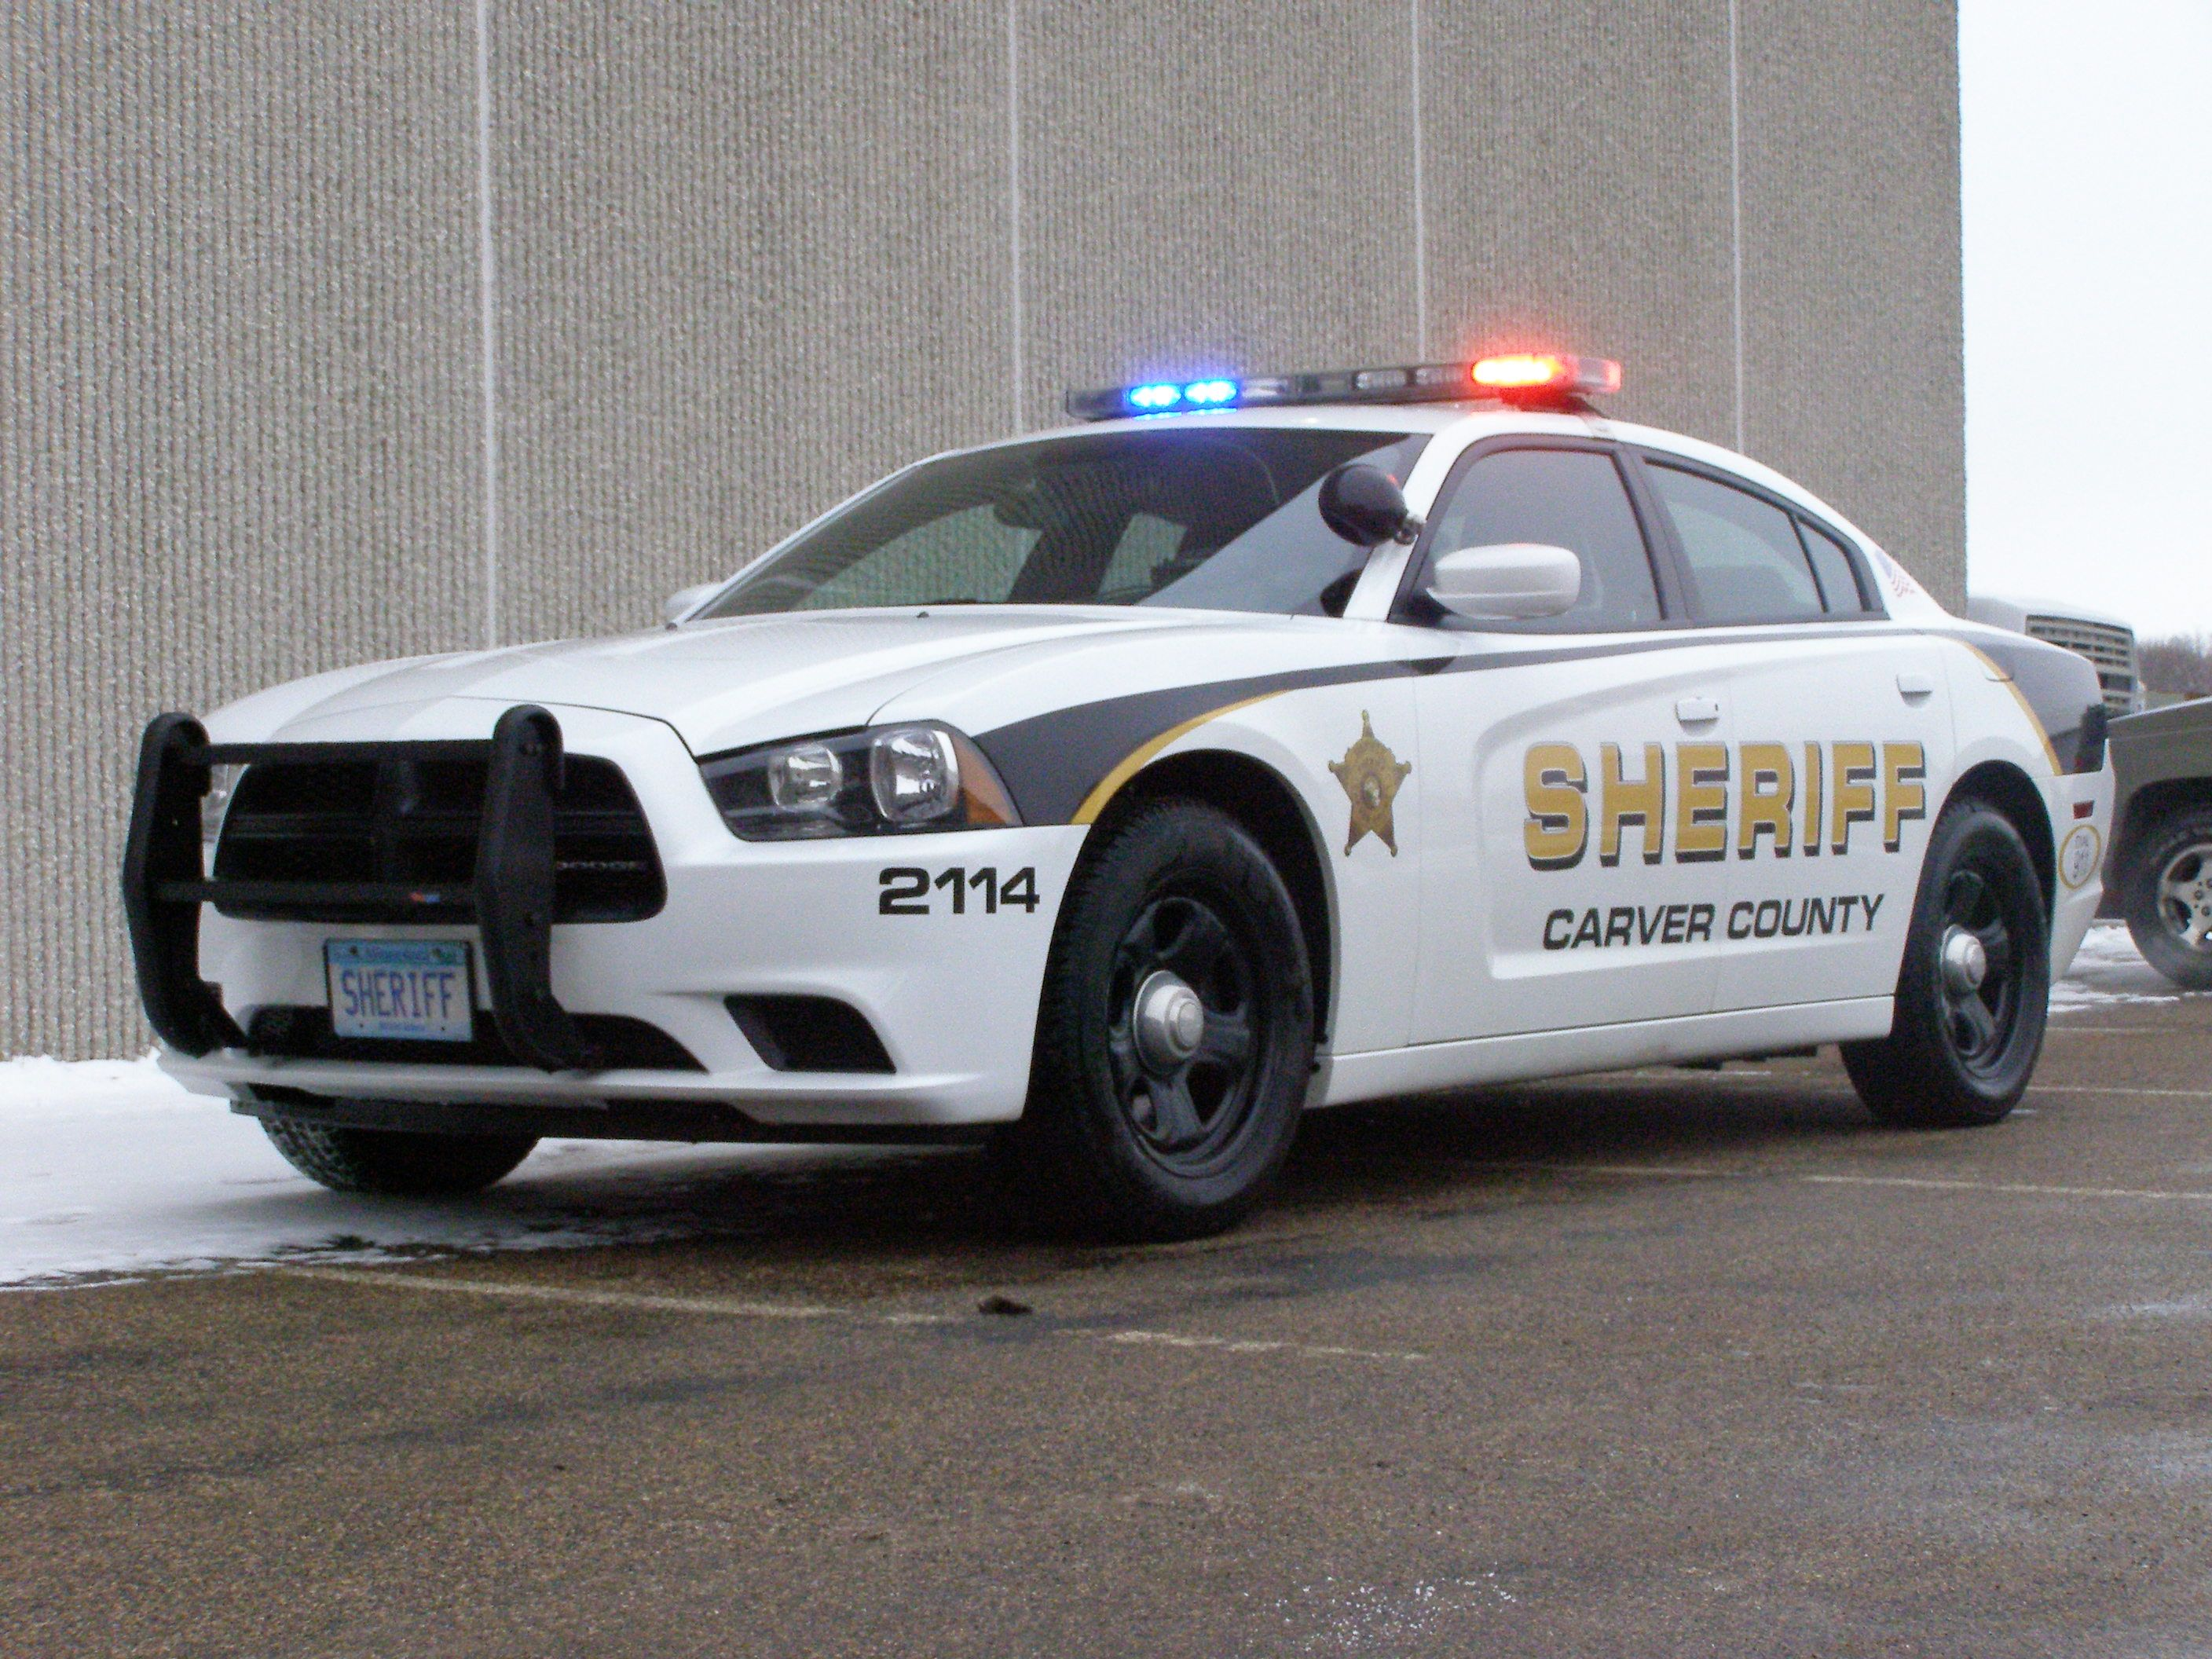 Carver County Mn Sheriff S Dodge Charger With Images Police